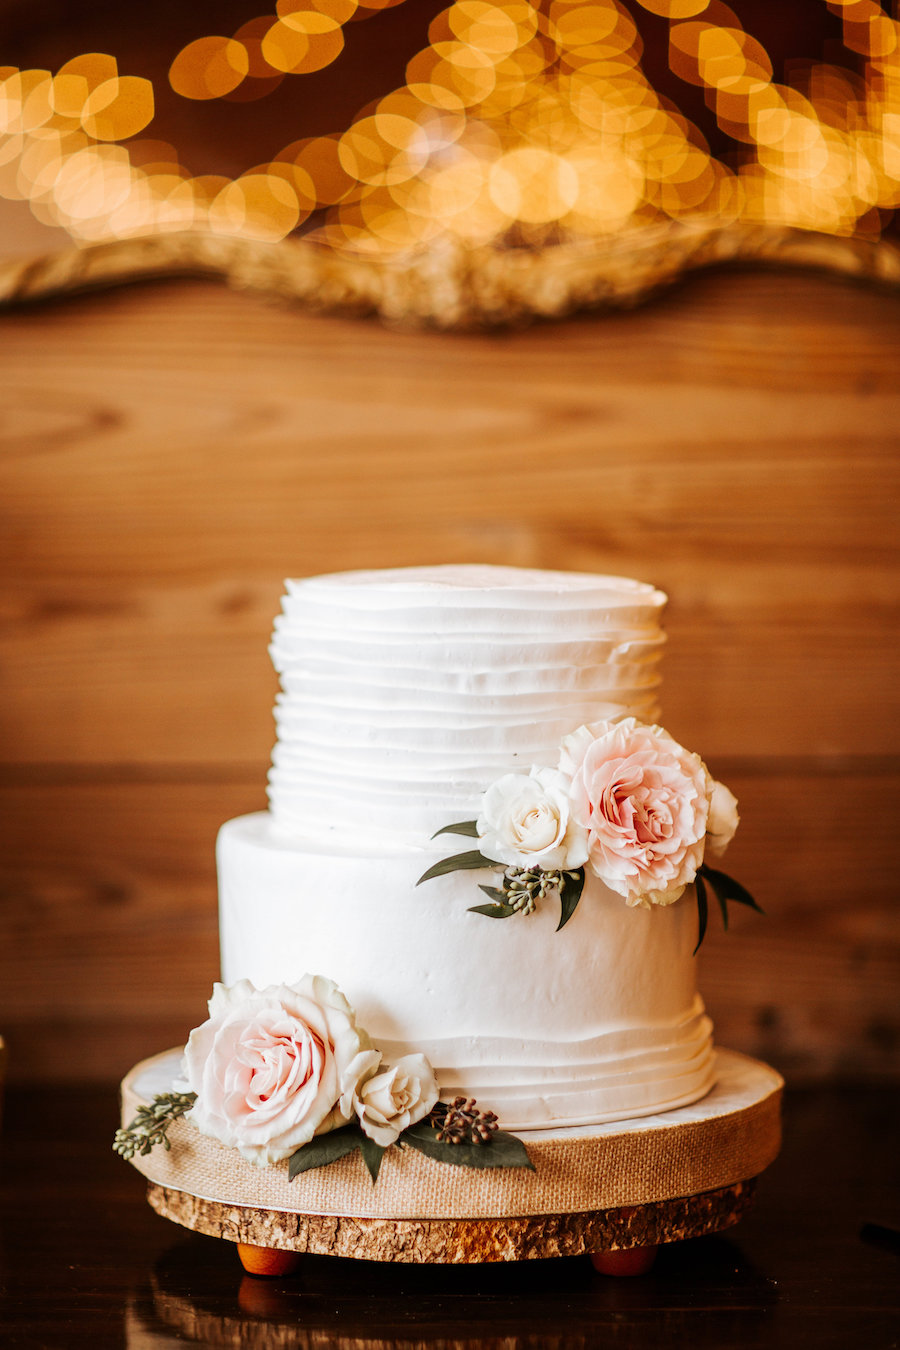 Rustic Inspired Wedding Dessert Bar With Two Tier White Ruffled Wedding Cake With Floral Accents By Alessi Bakery Marry Me Tampa Bay Local Real Wedding Inspiration Vendor Recommendation Reviews